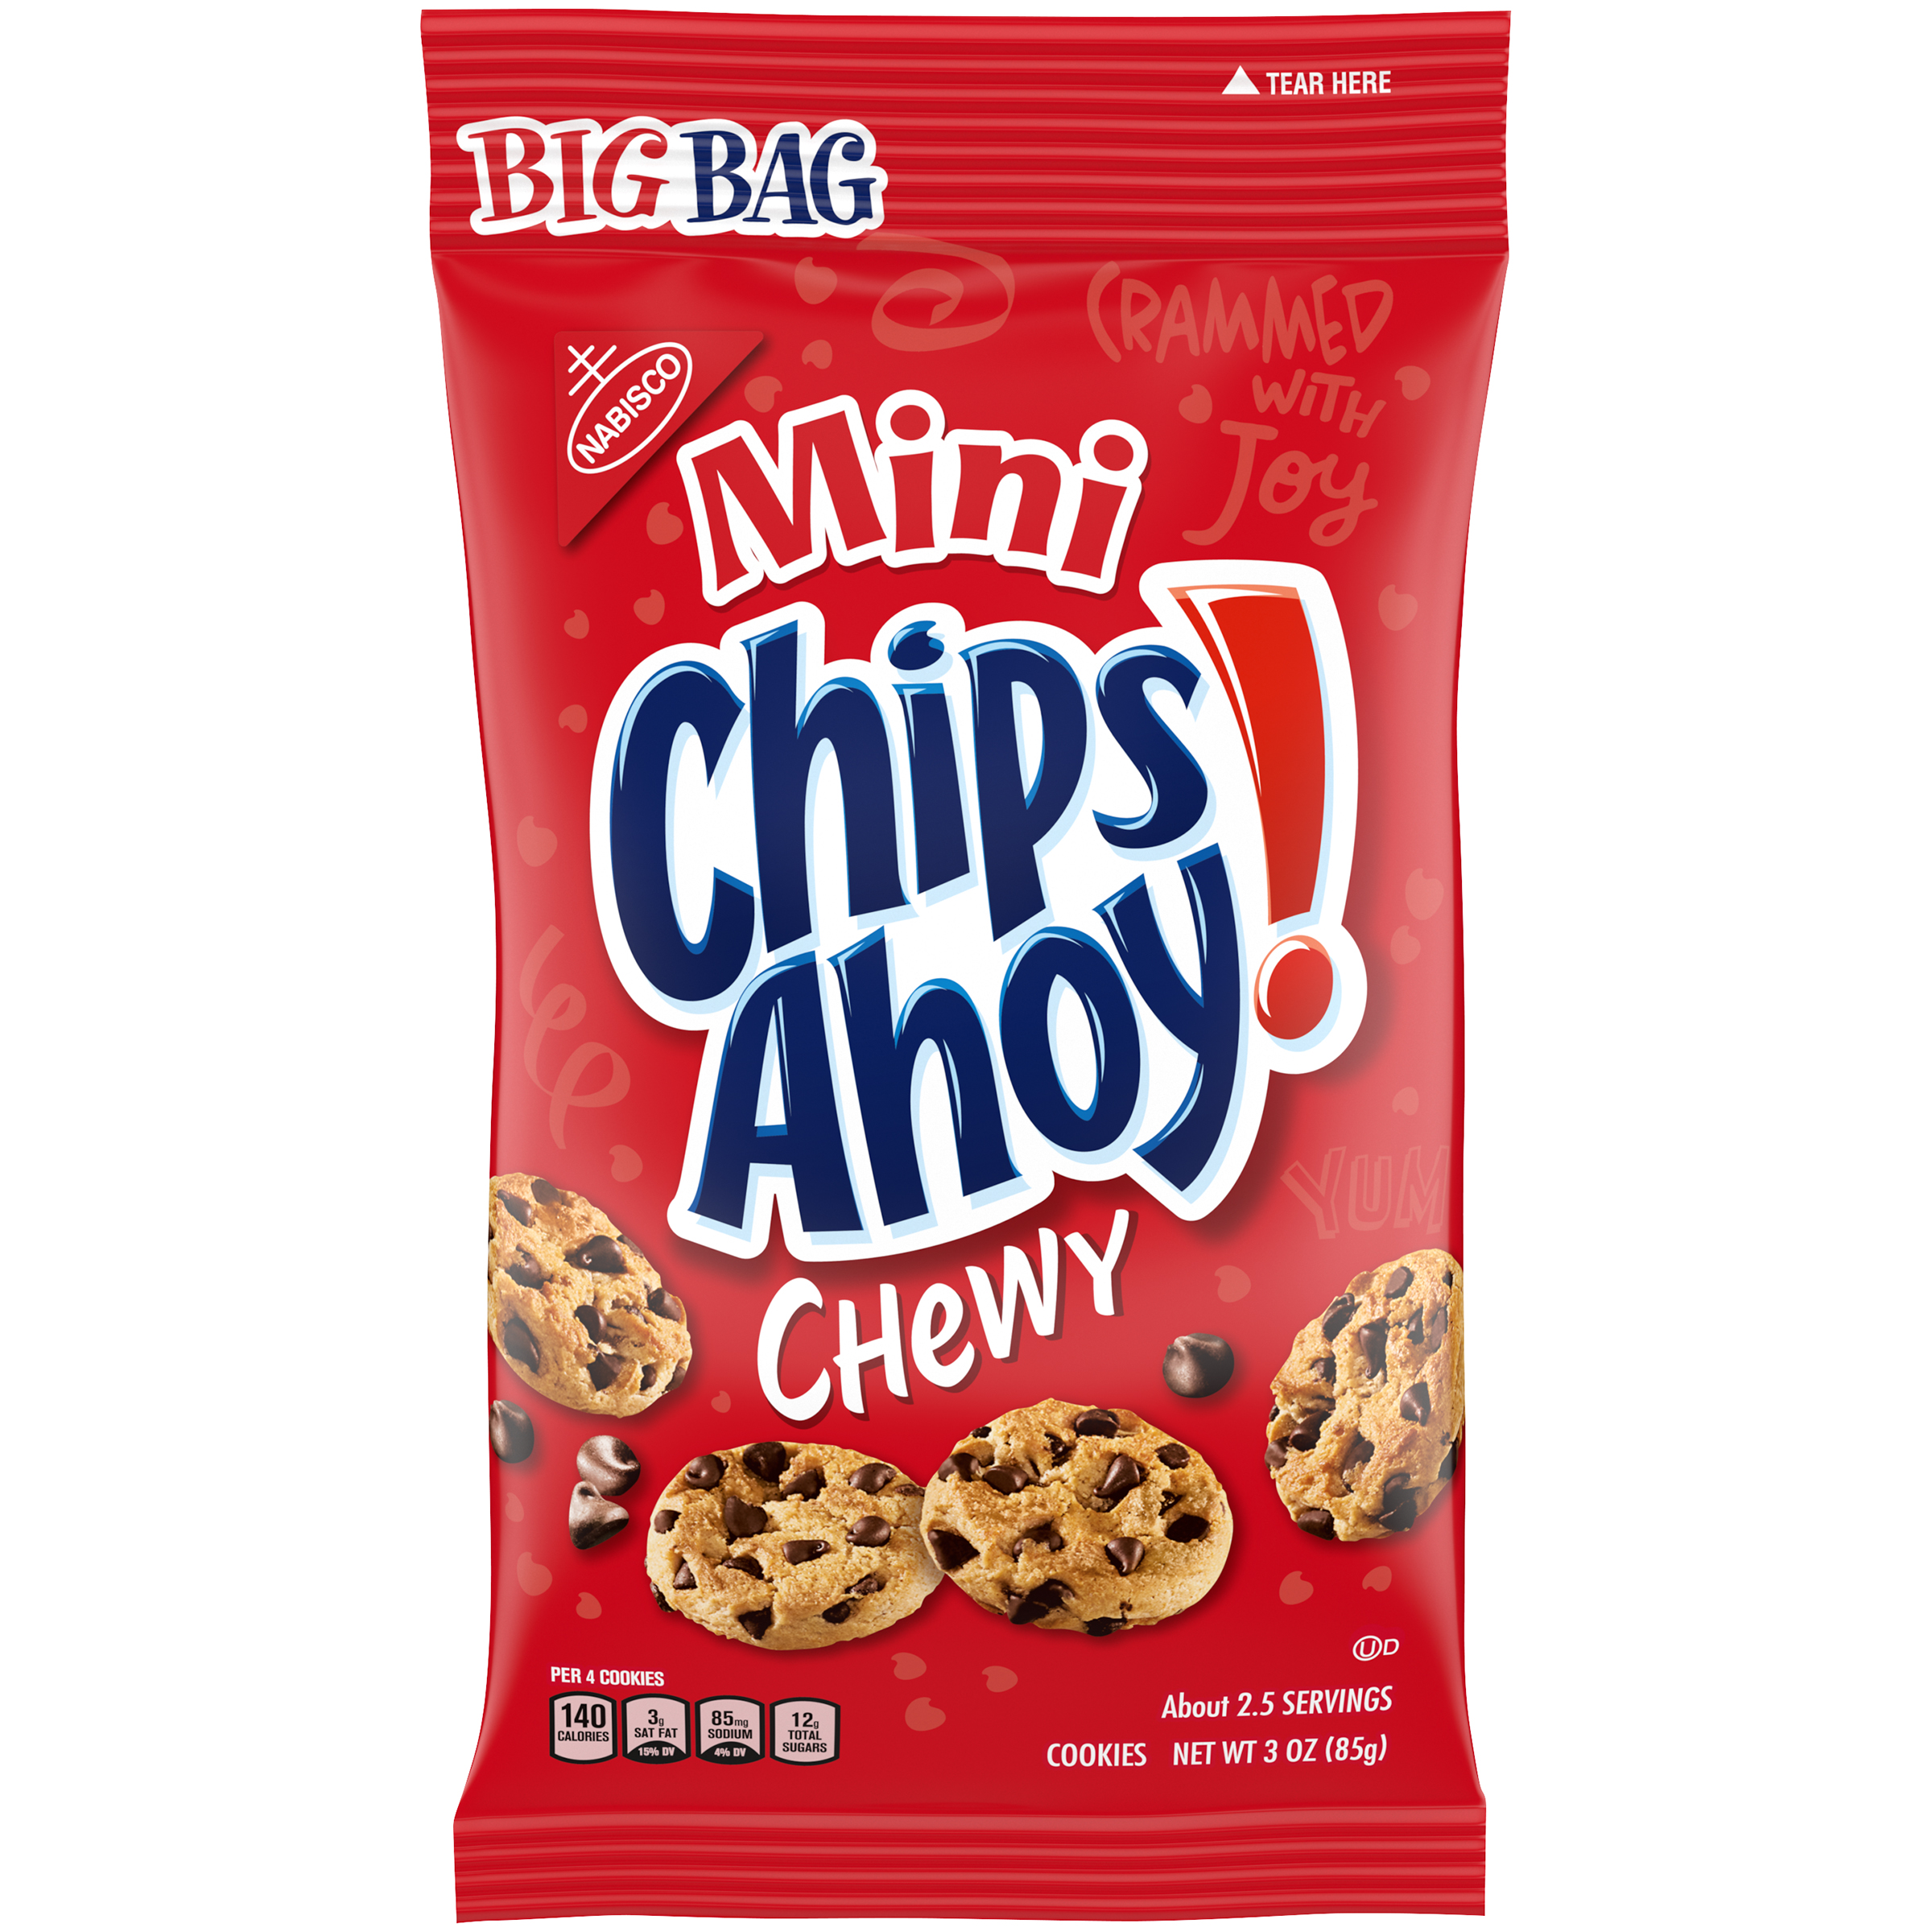 CHIPS AHOY! Mini Chewy Chocolate Chip Cookies, 1 Big Bag (3 oz.)